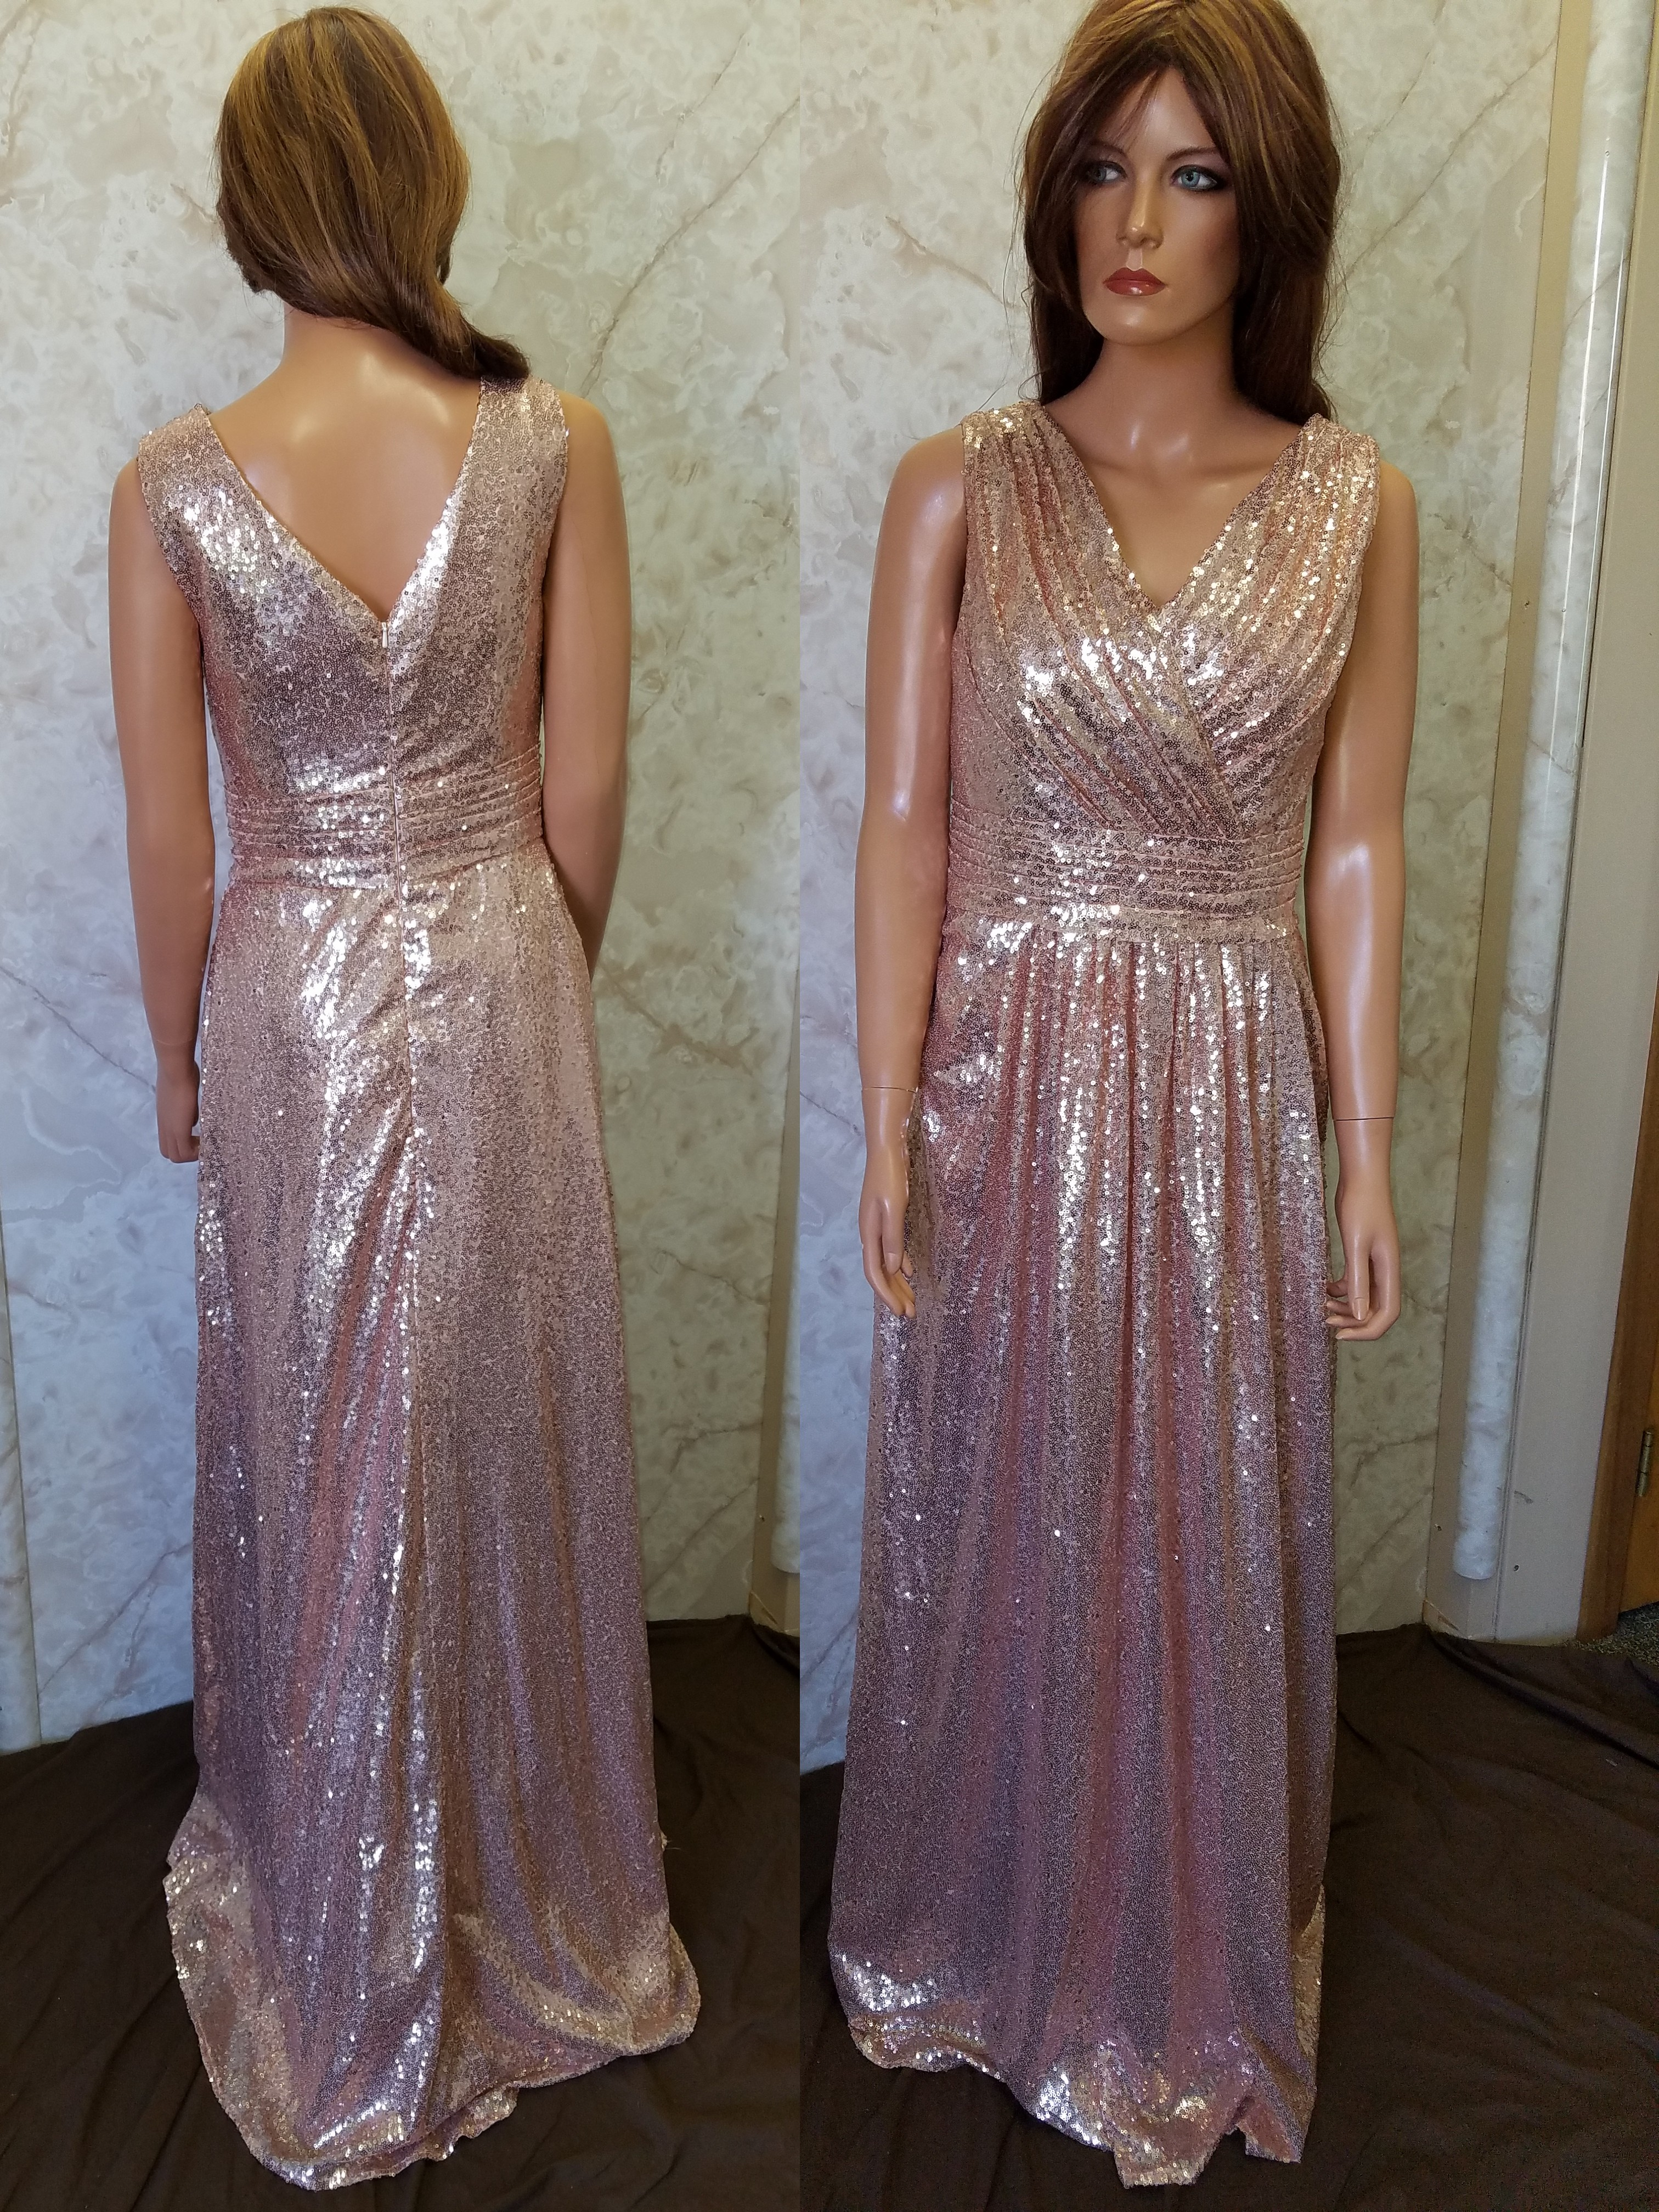 Gold sequin bridesmaid dresses rose sequin dress ombrellifo Choice Image